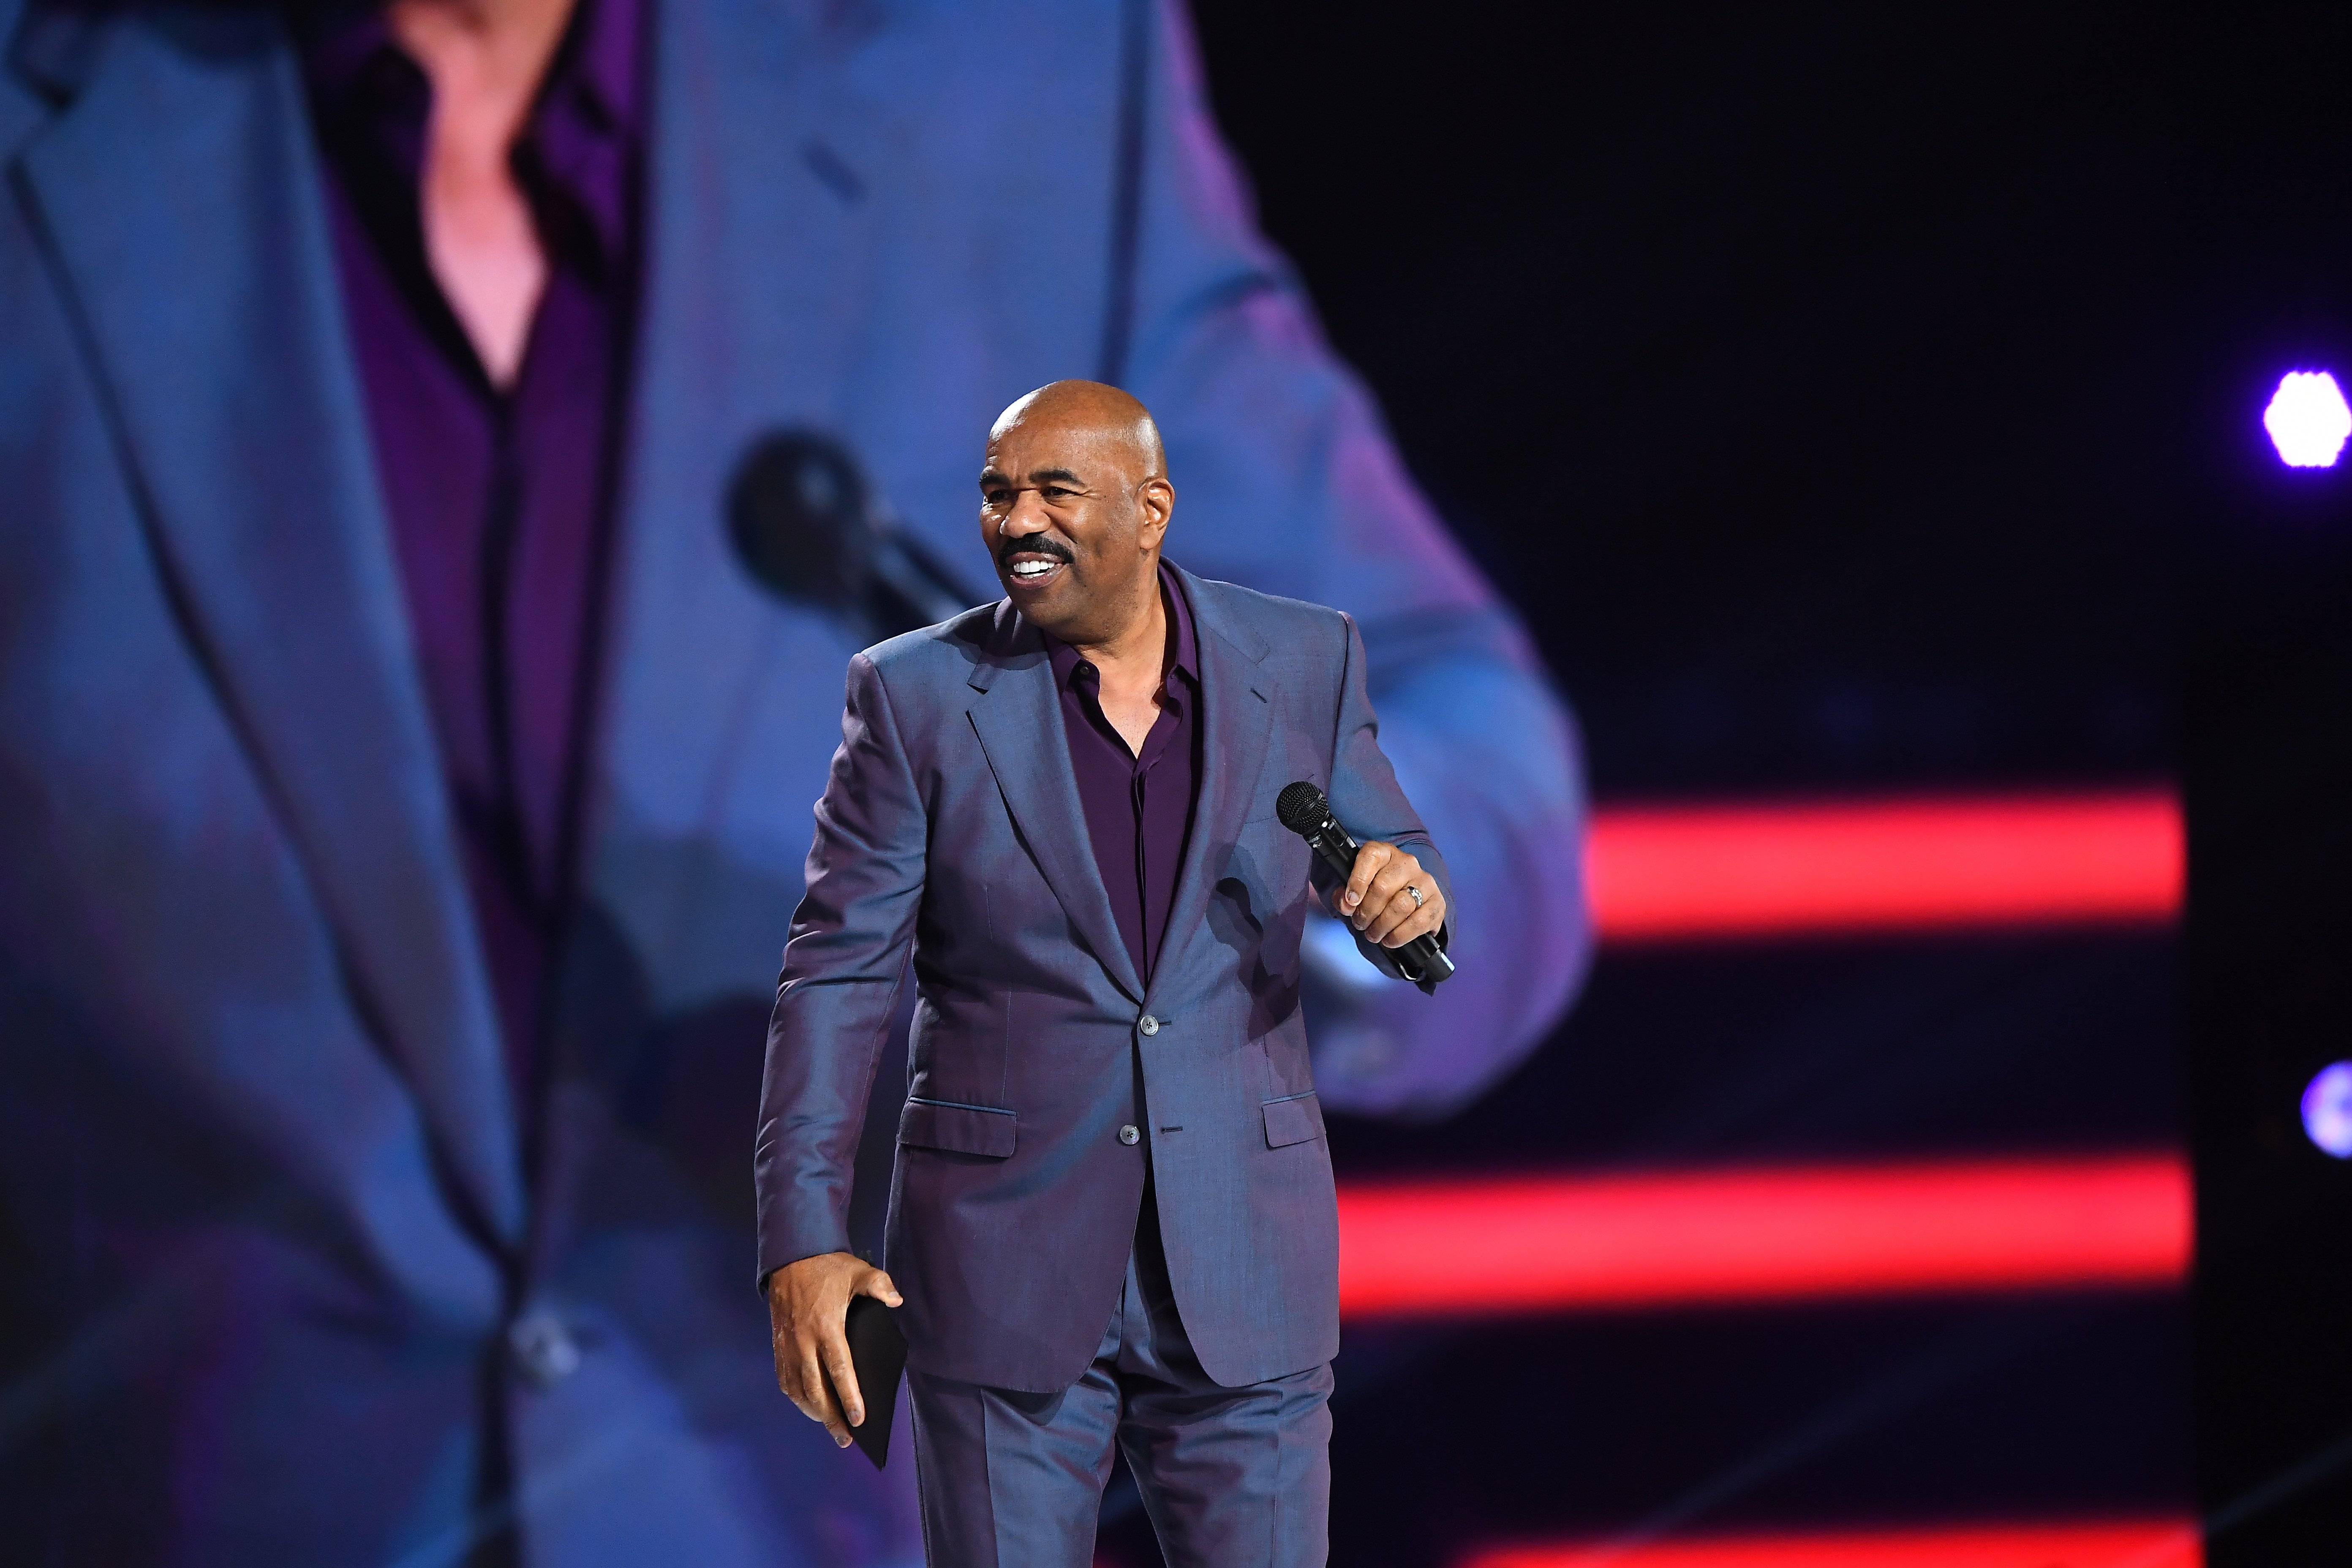 Steve Harvey speaks at the Beloved Benefit event in Atlanta, Georgia on March 21, 2019 | Photo: Getty Images